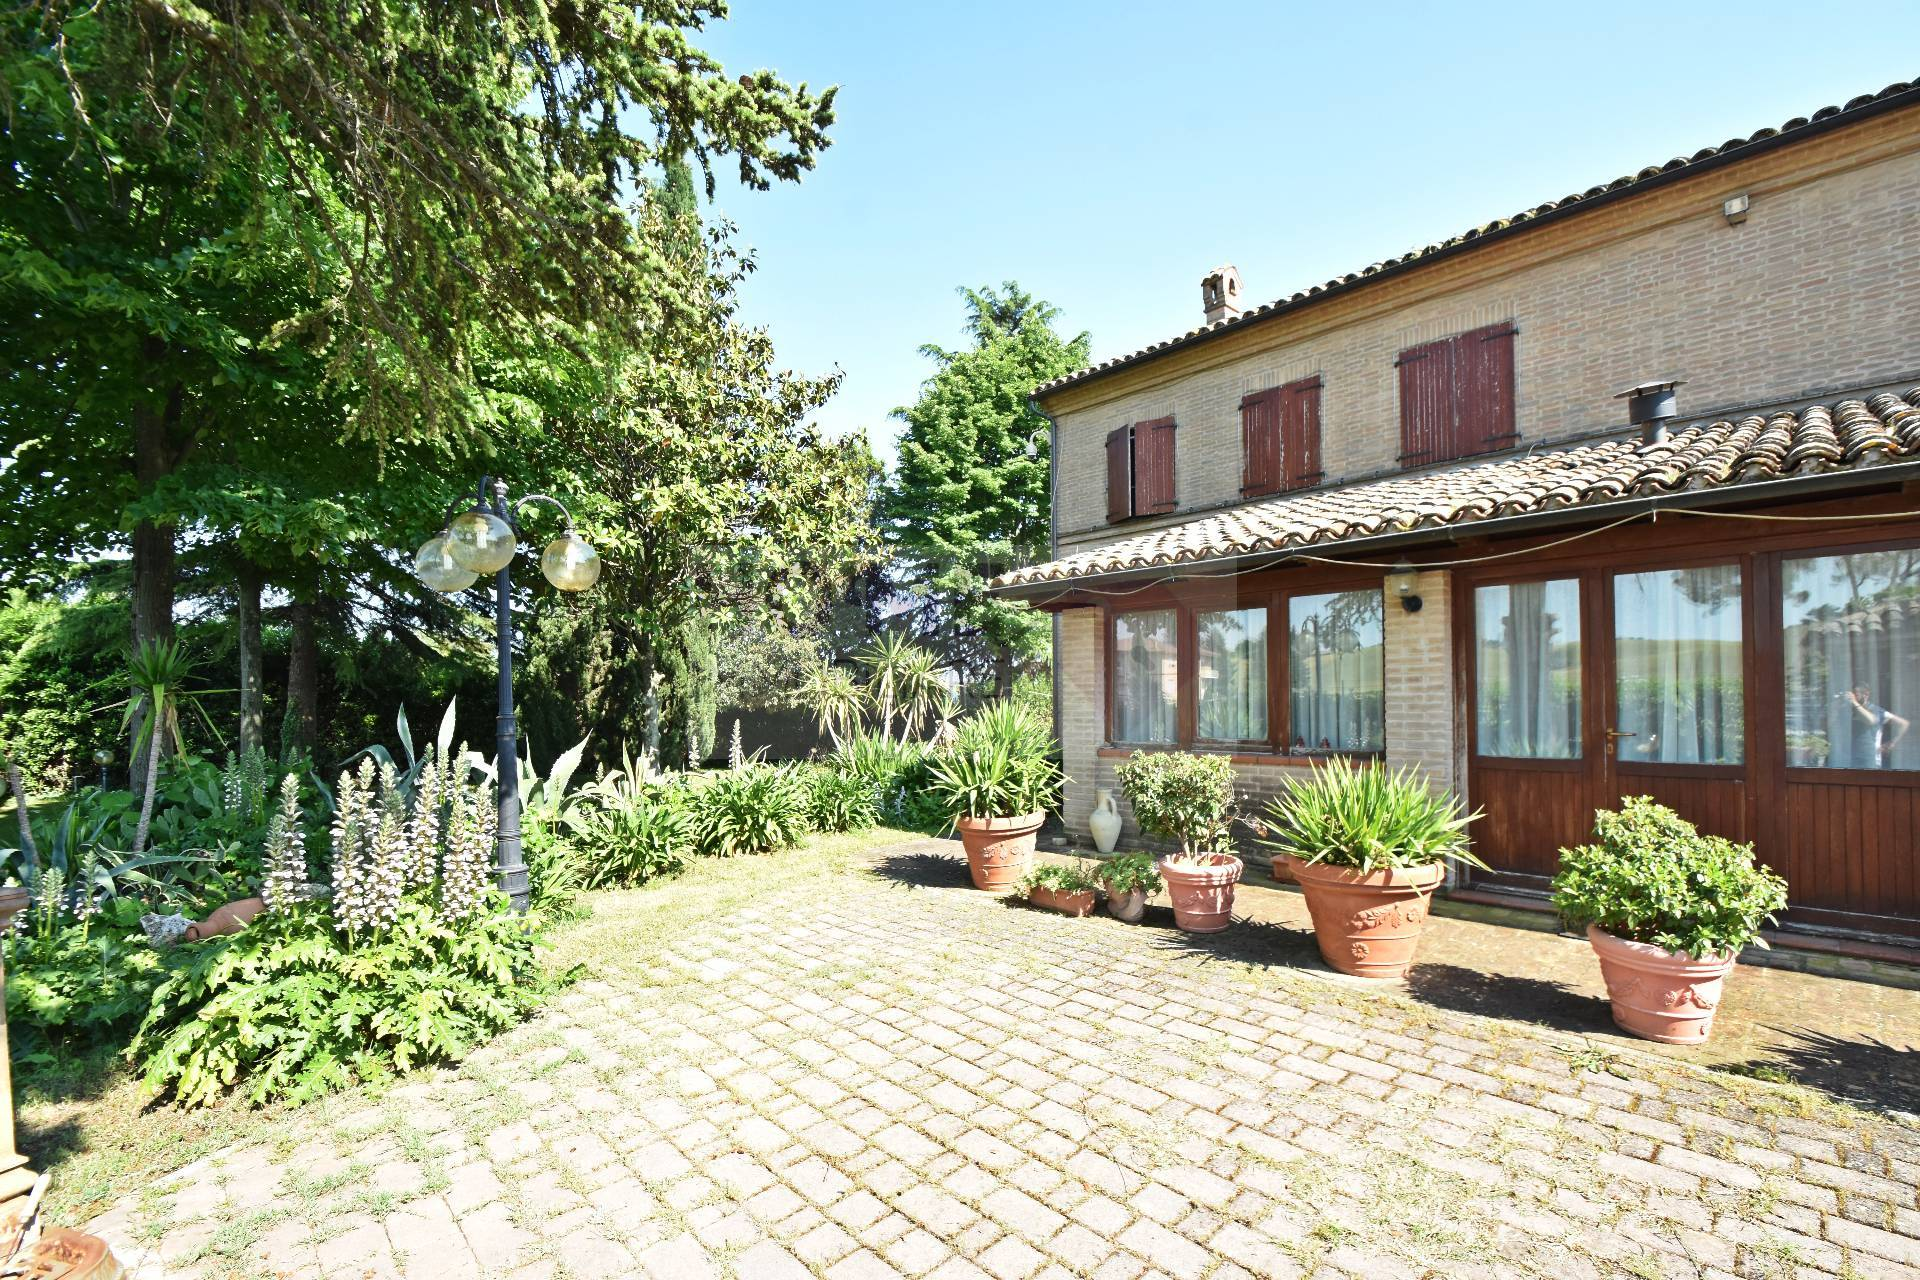 macerata vendita quart: periferia home immobiliare srl